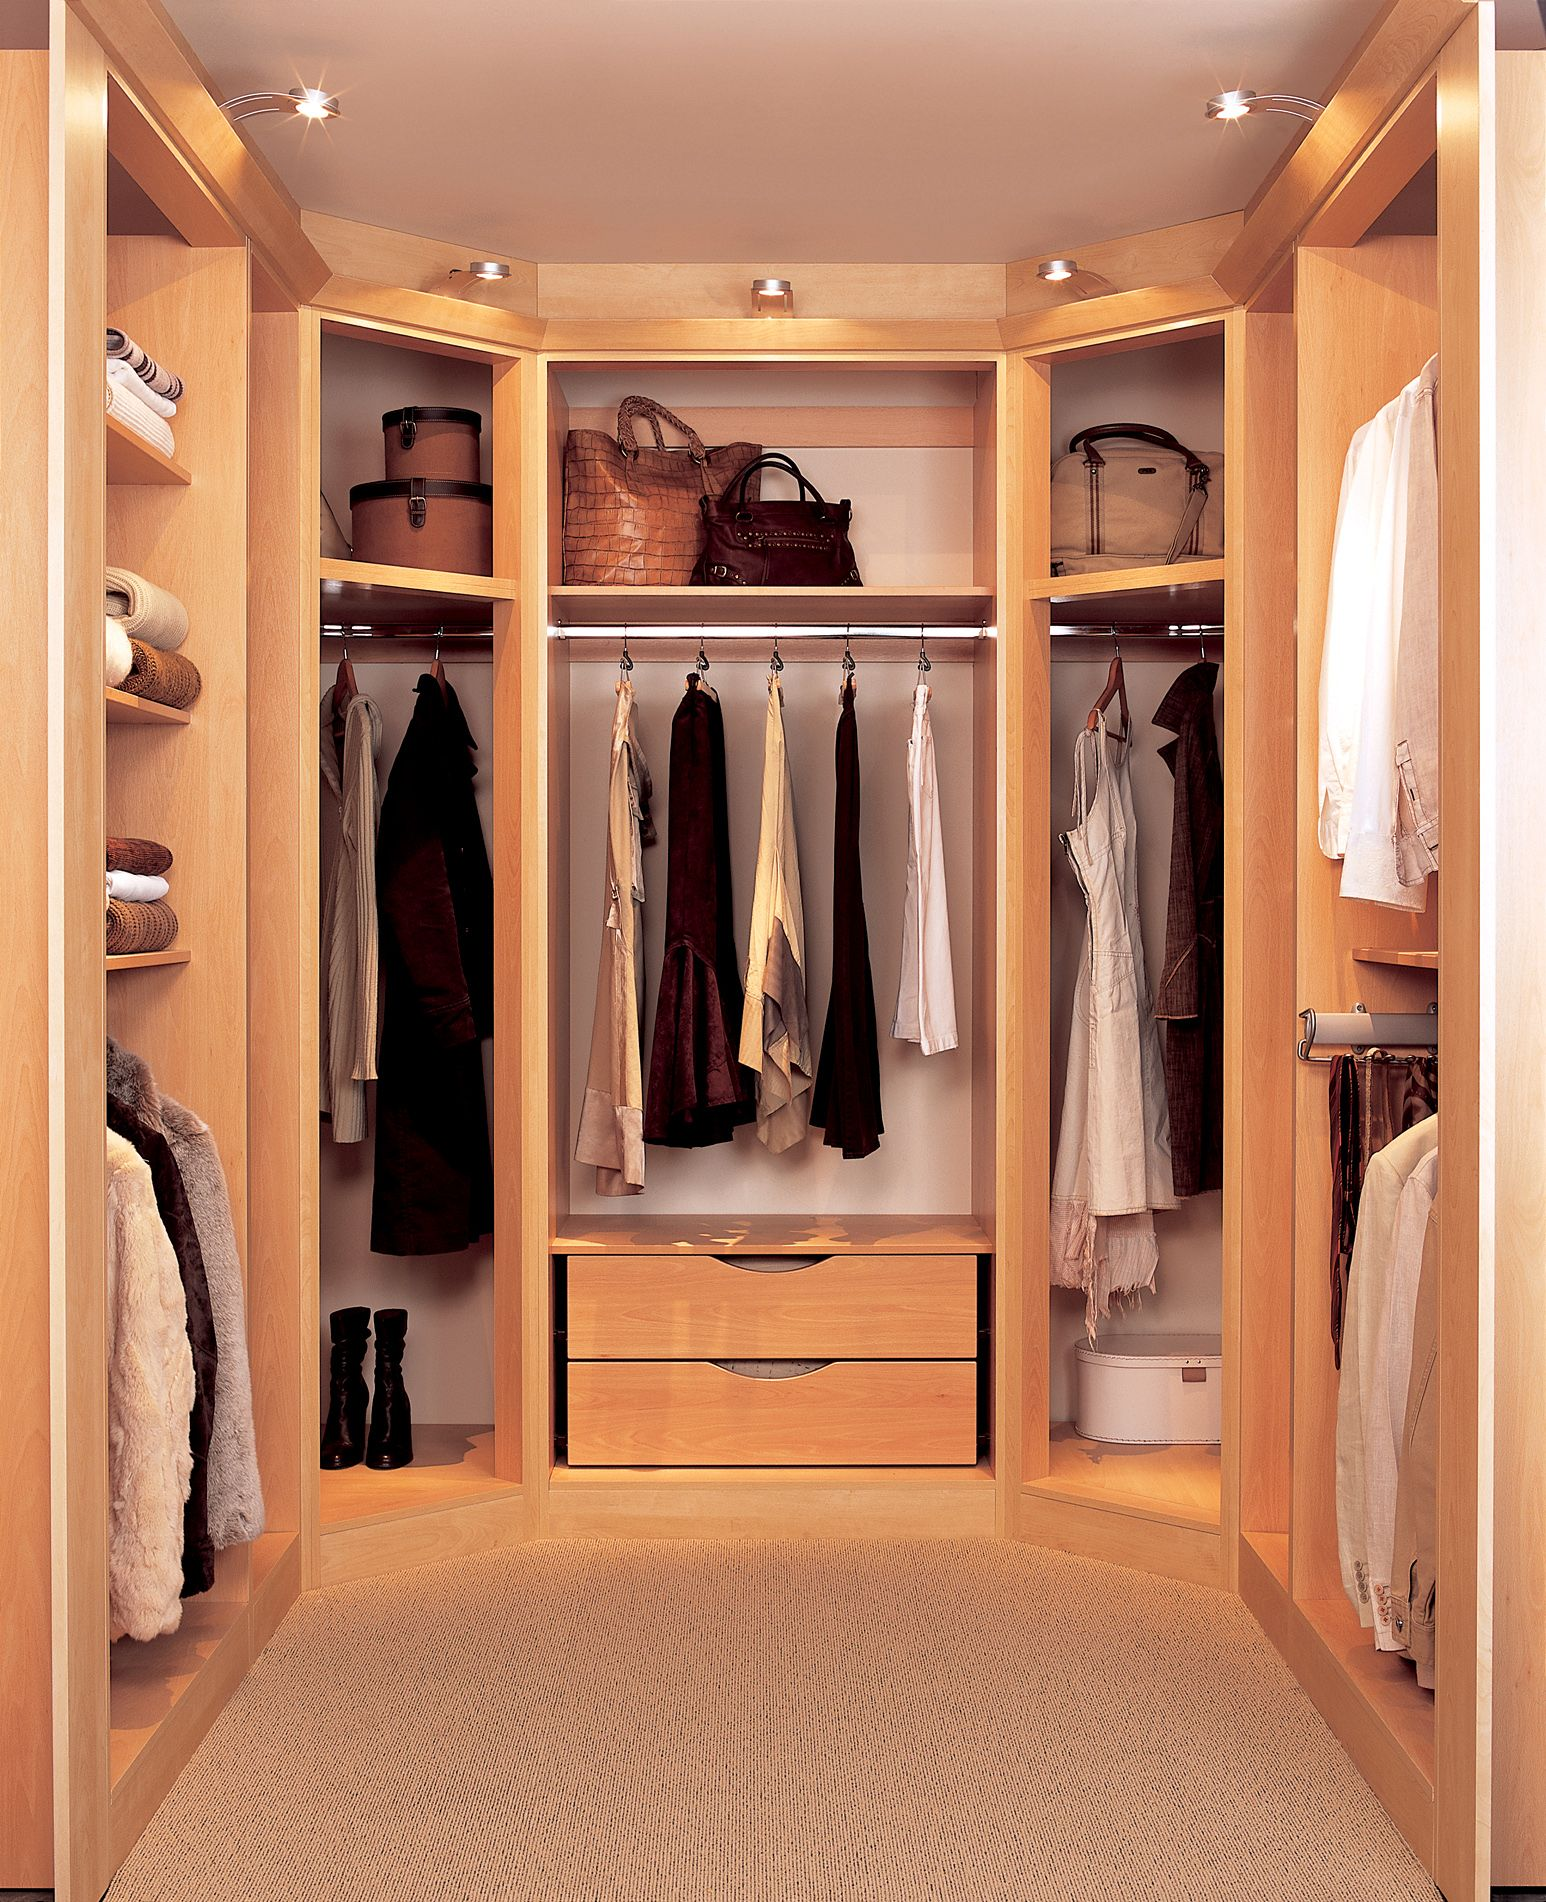 Superb Closet Organizers Ikea Stylish Design: Gorgeous U Shaped Man Walk In Closet  Organizers Ikea In Small Room Furniture With Drawers And Clothes Hanger ...